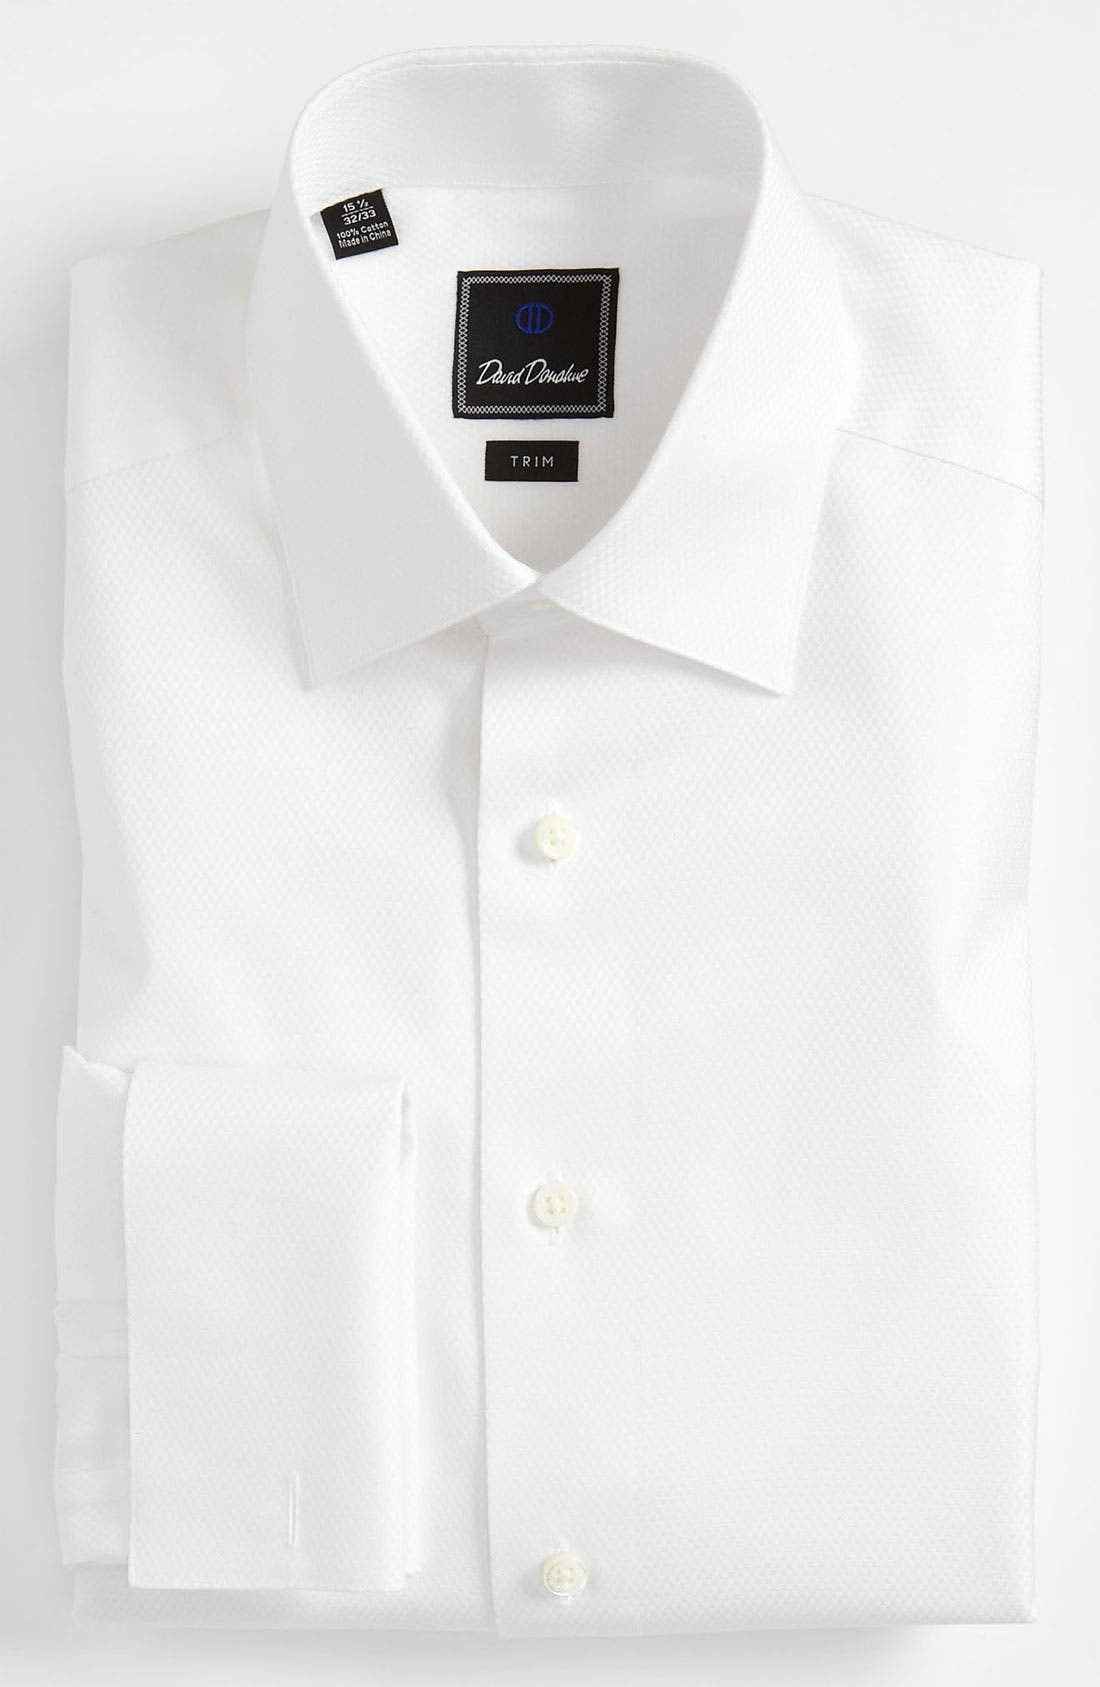 David Donahue Trim Fit Solid French Cuff Tuxedo Shirt